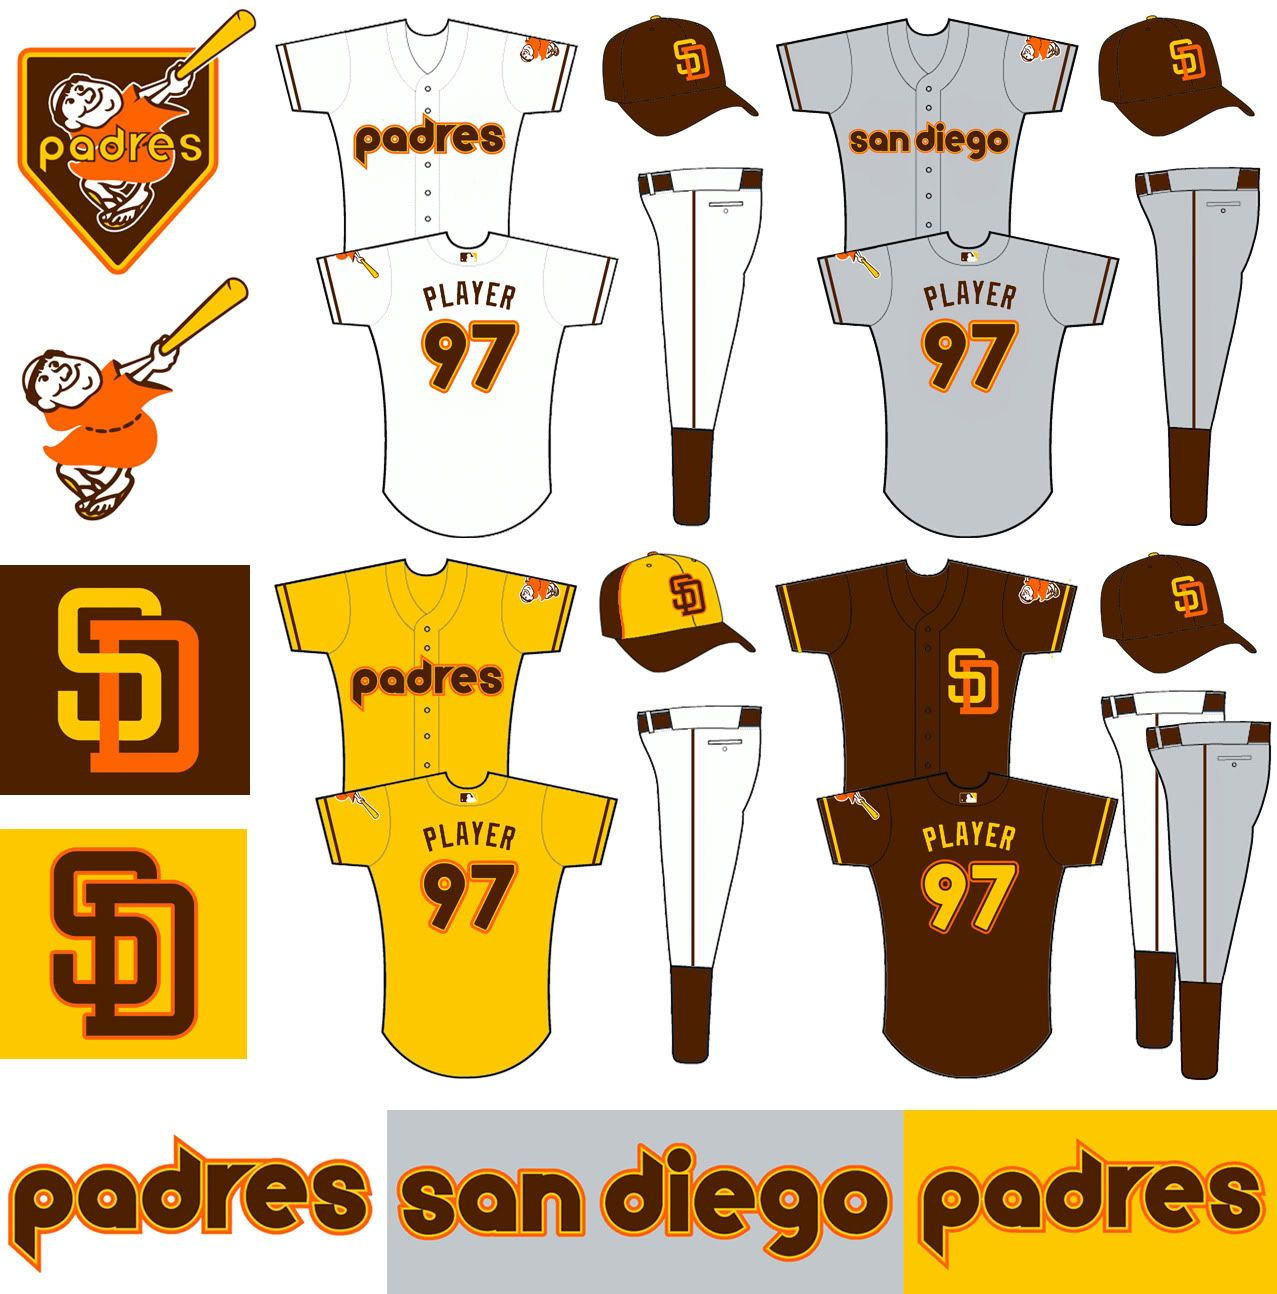 Padres Old Logo - San Diego Padres Possibly To Get New Uniforms - Page 6 - Sports ...